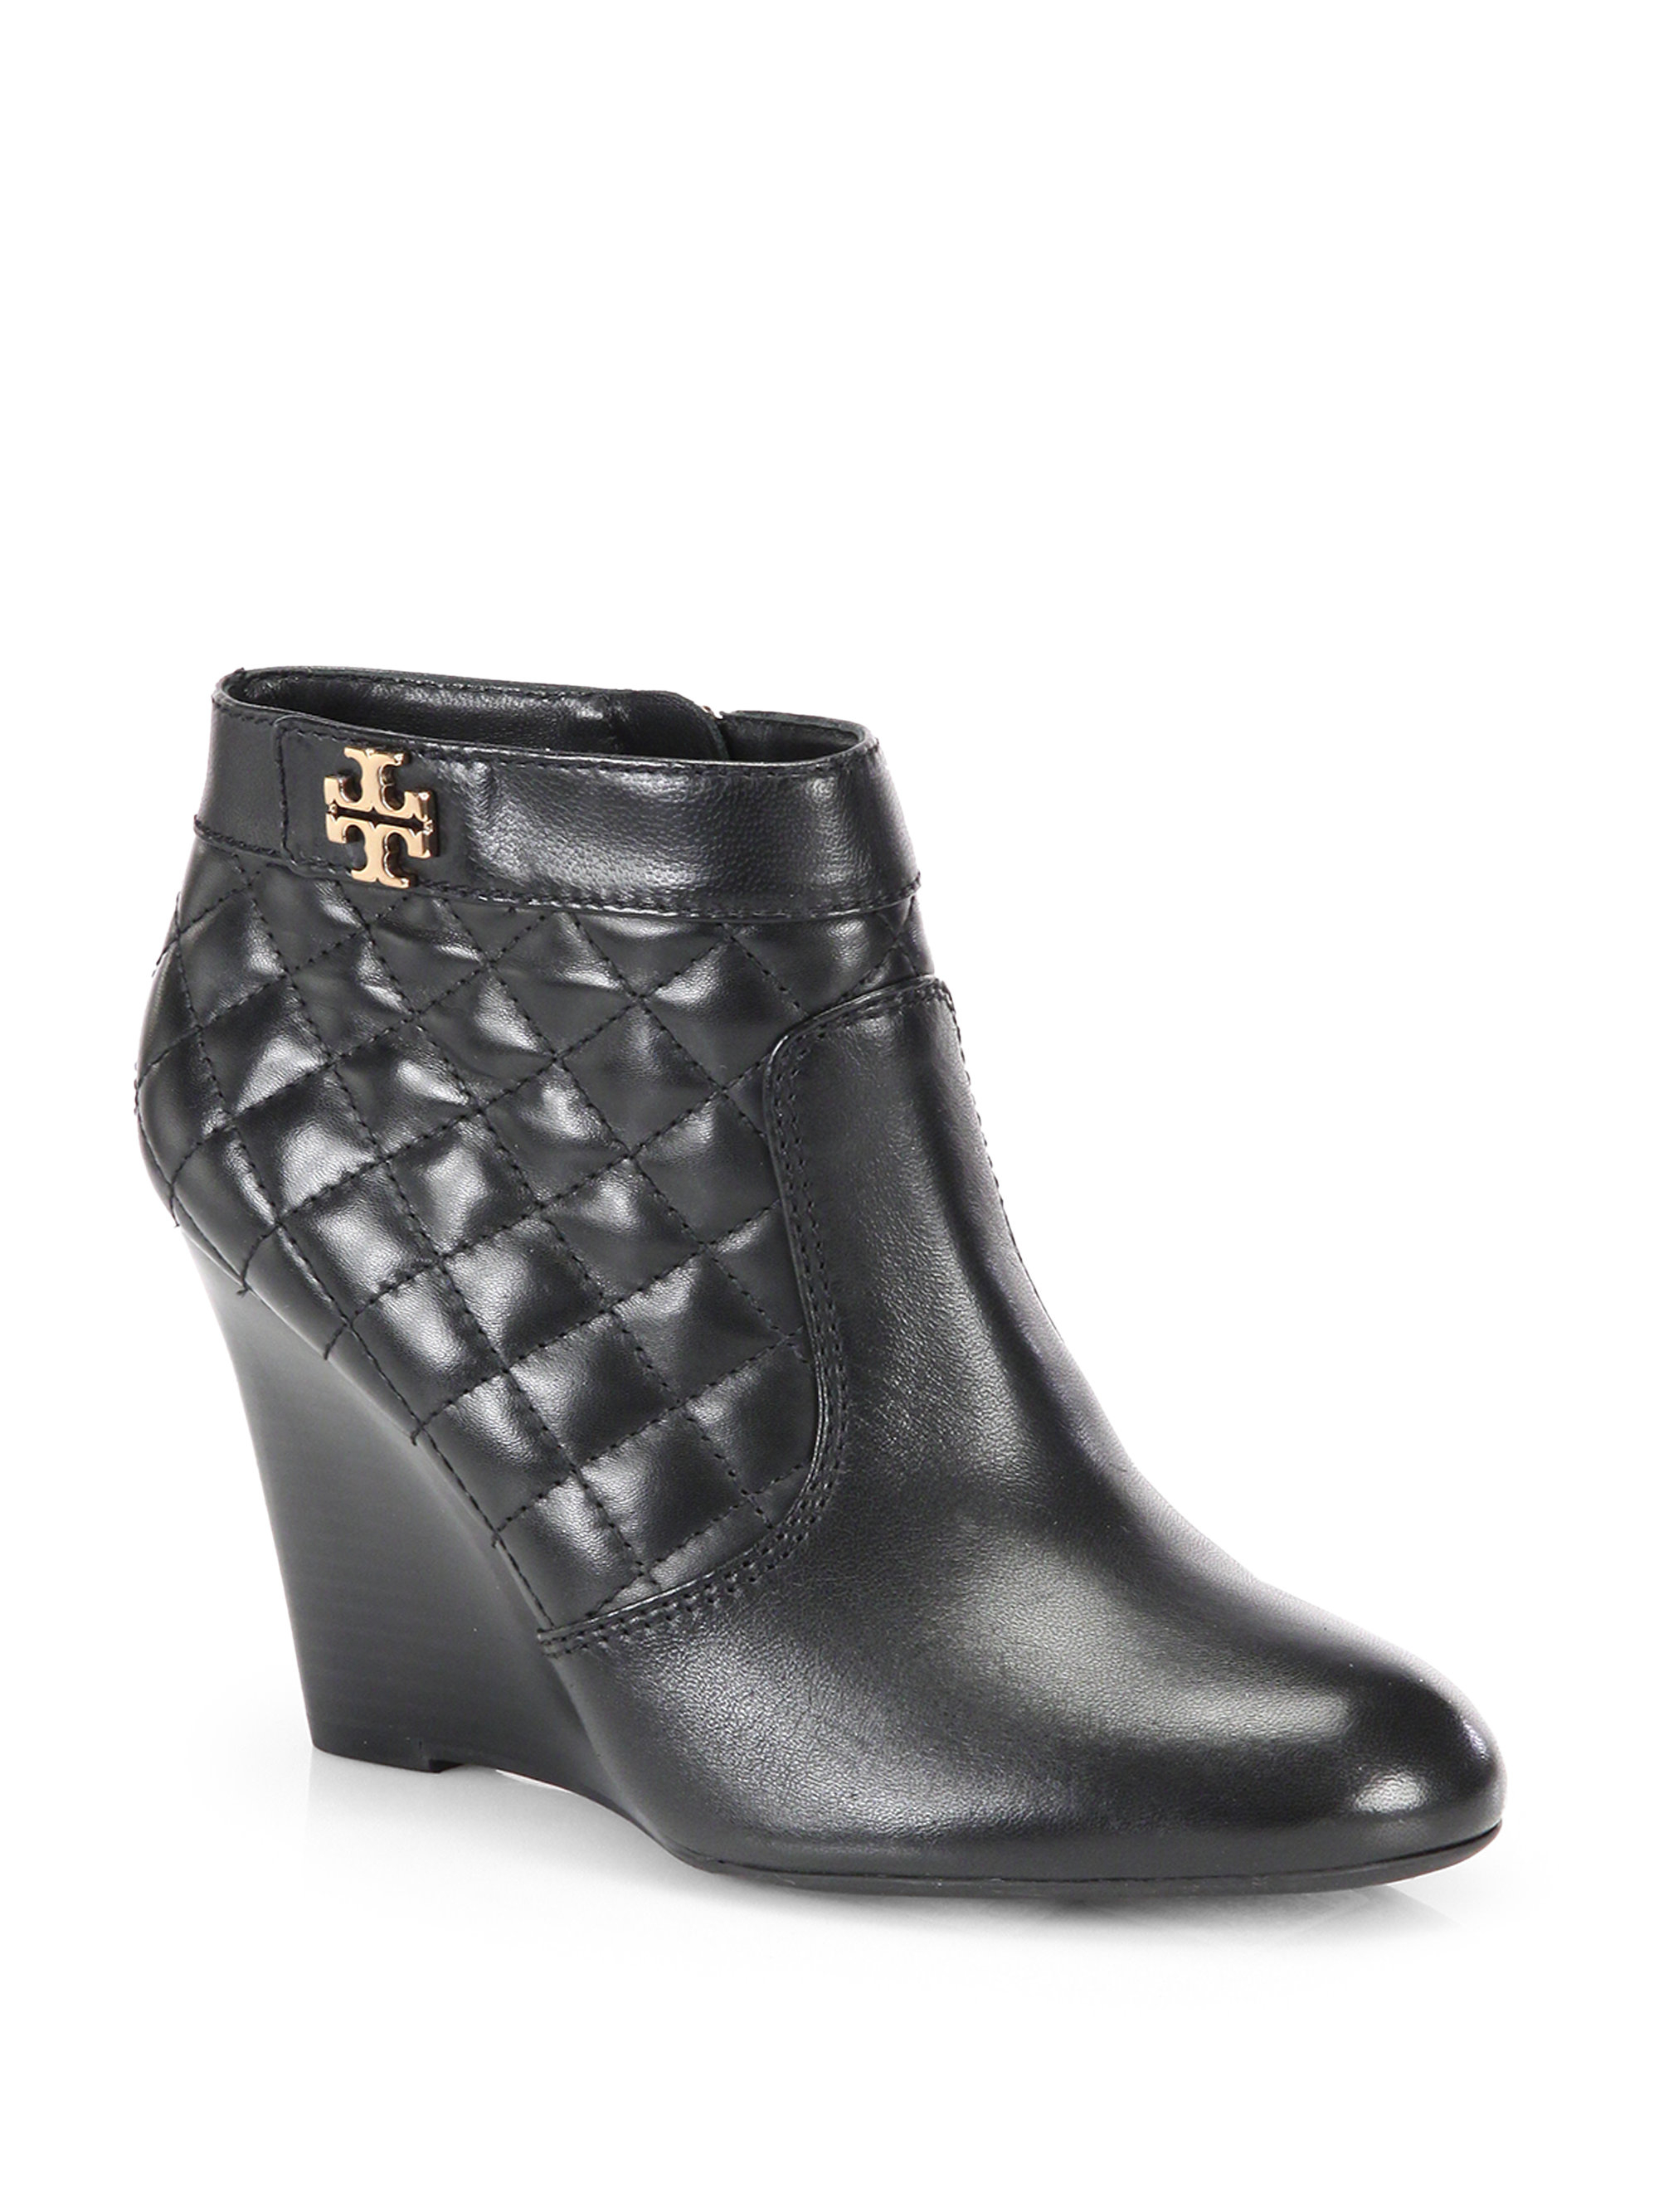 Lyst Tory Burch Leila Quilted Leather Wedge Ankle Boots